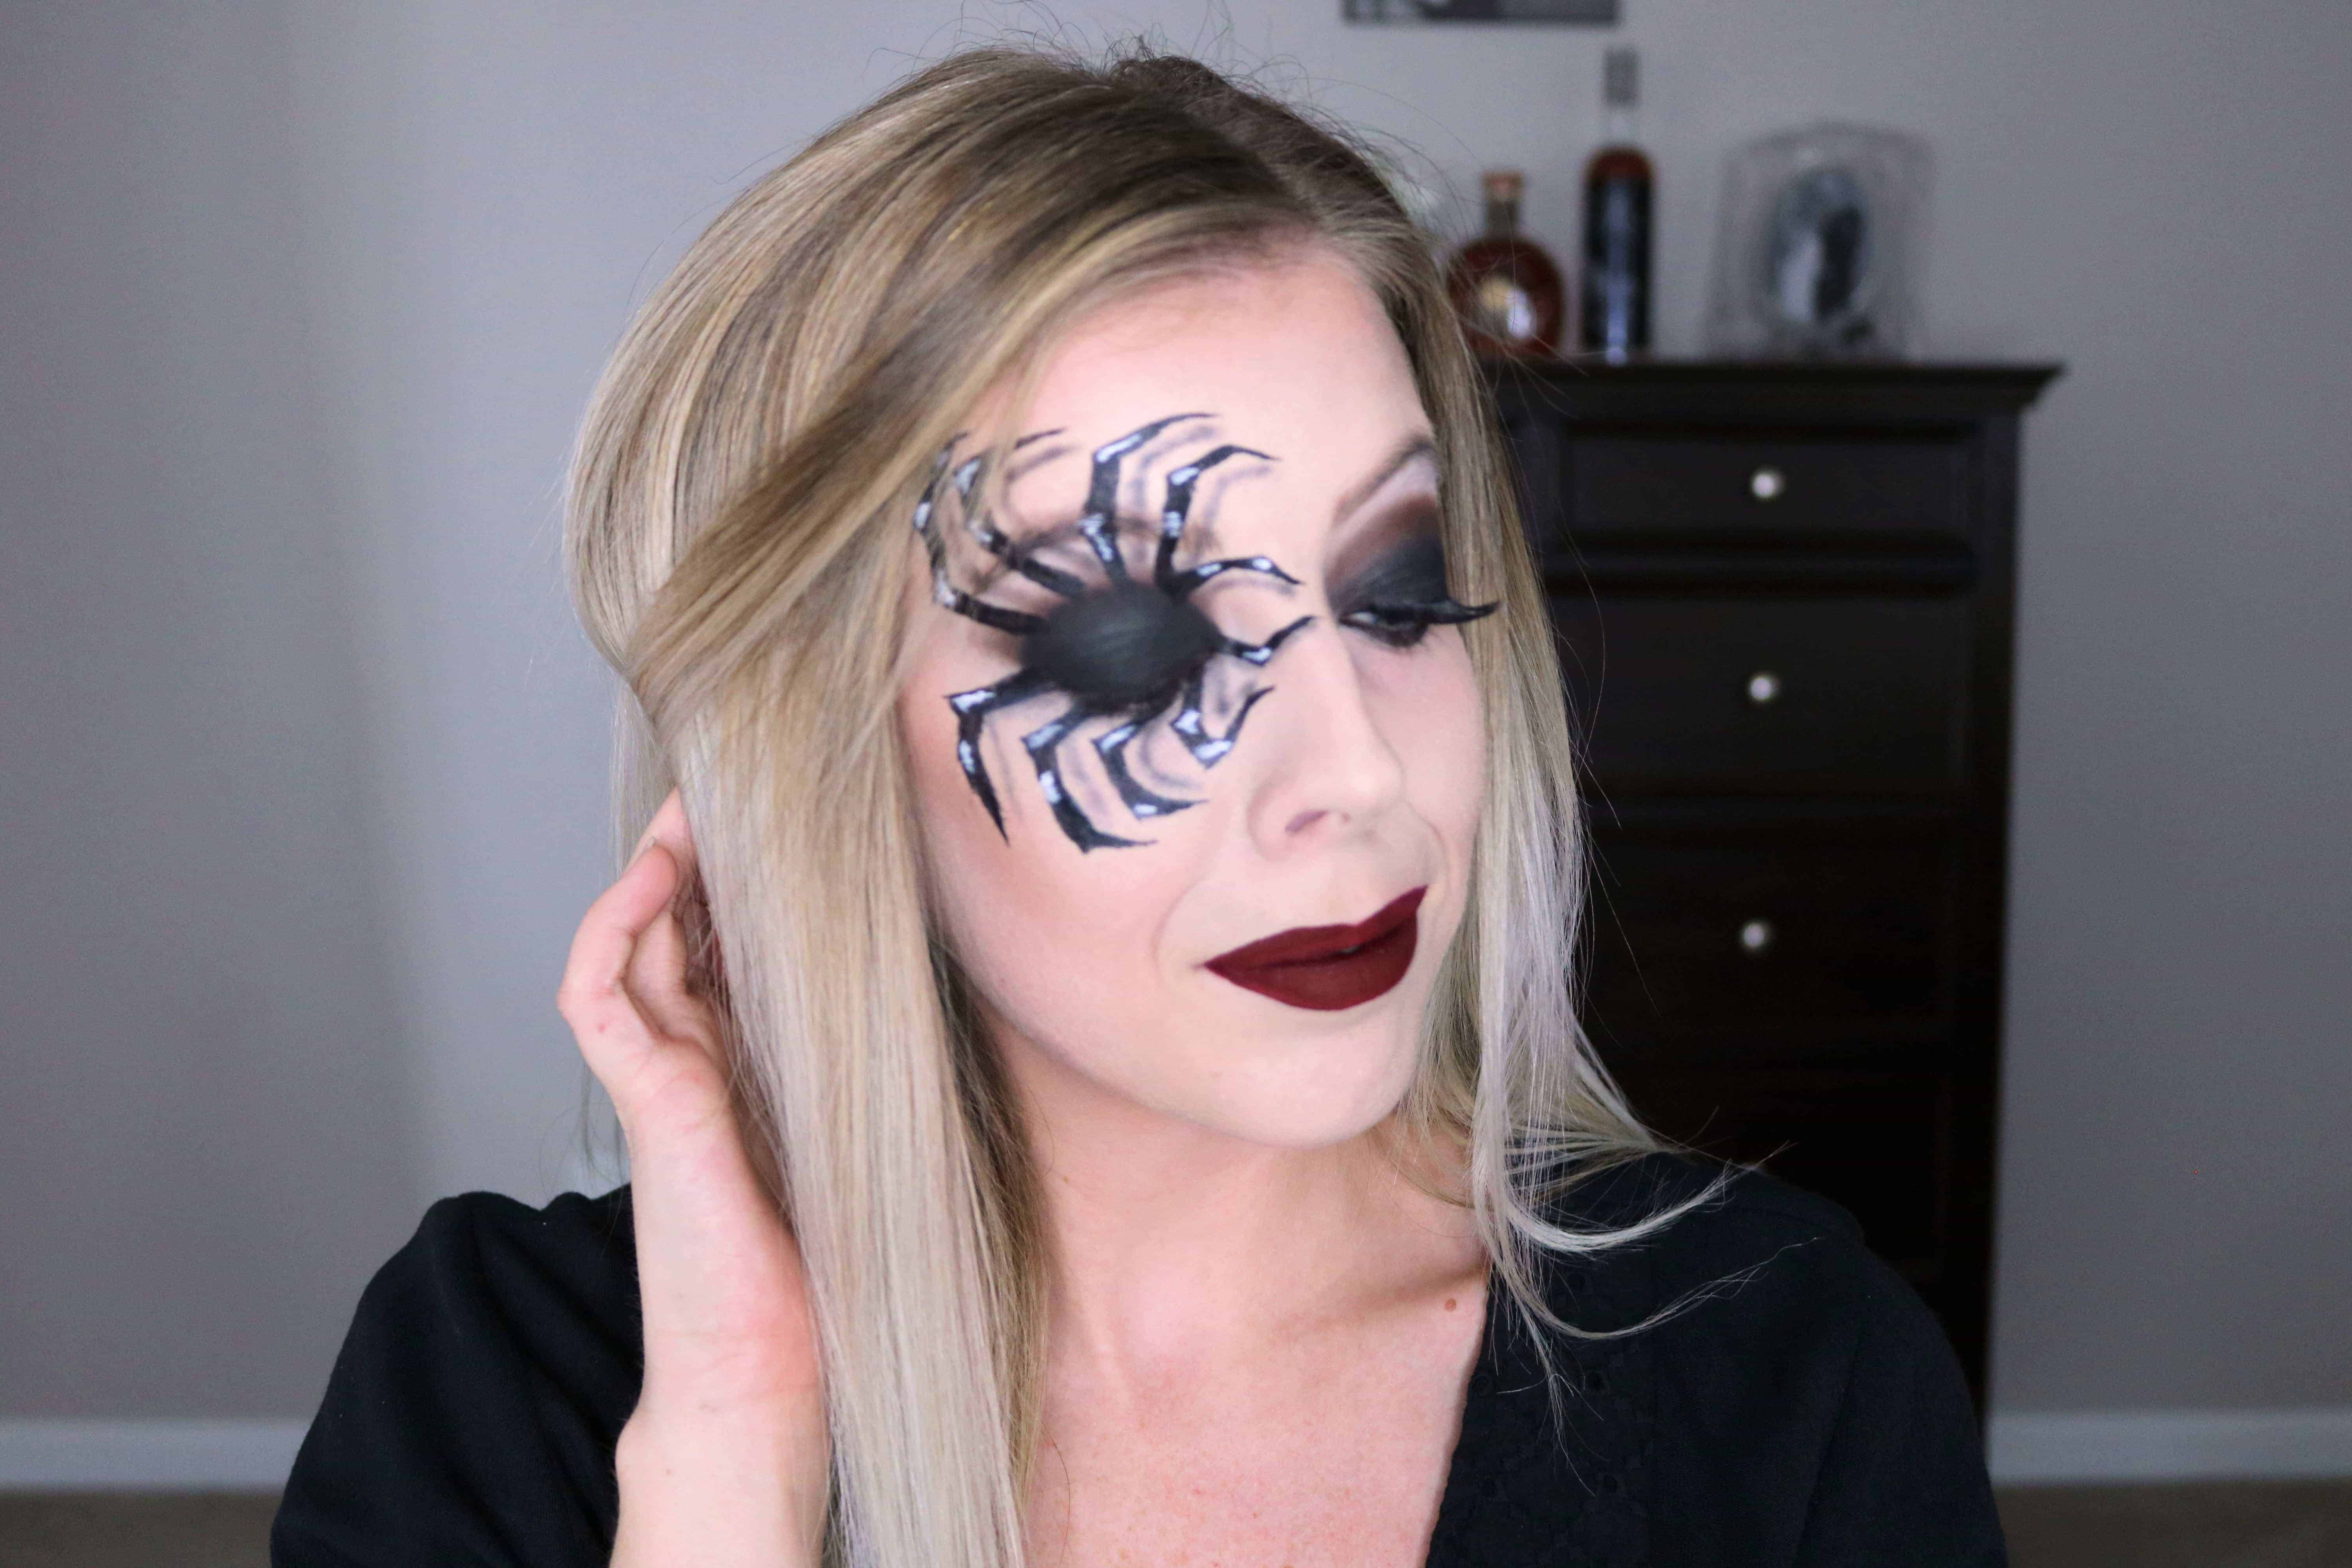 This Spooky Spider Makeup is my most favorite halloween makeup look yet! Check out the post for a step-by-step tutorial on this fun 3D spider makeup look. #halloweenmakeup #spidermakeup #makeuptutorial #halloweencostume